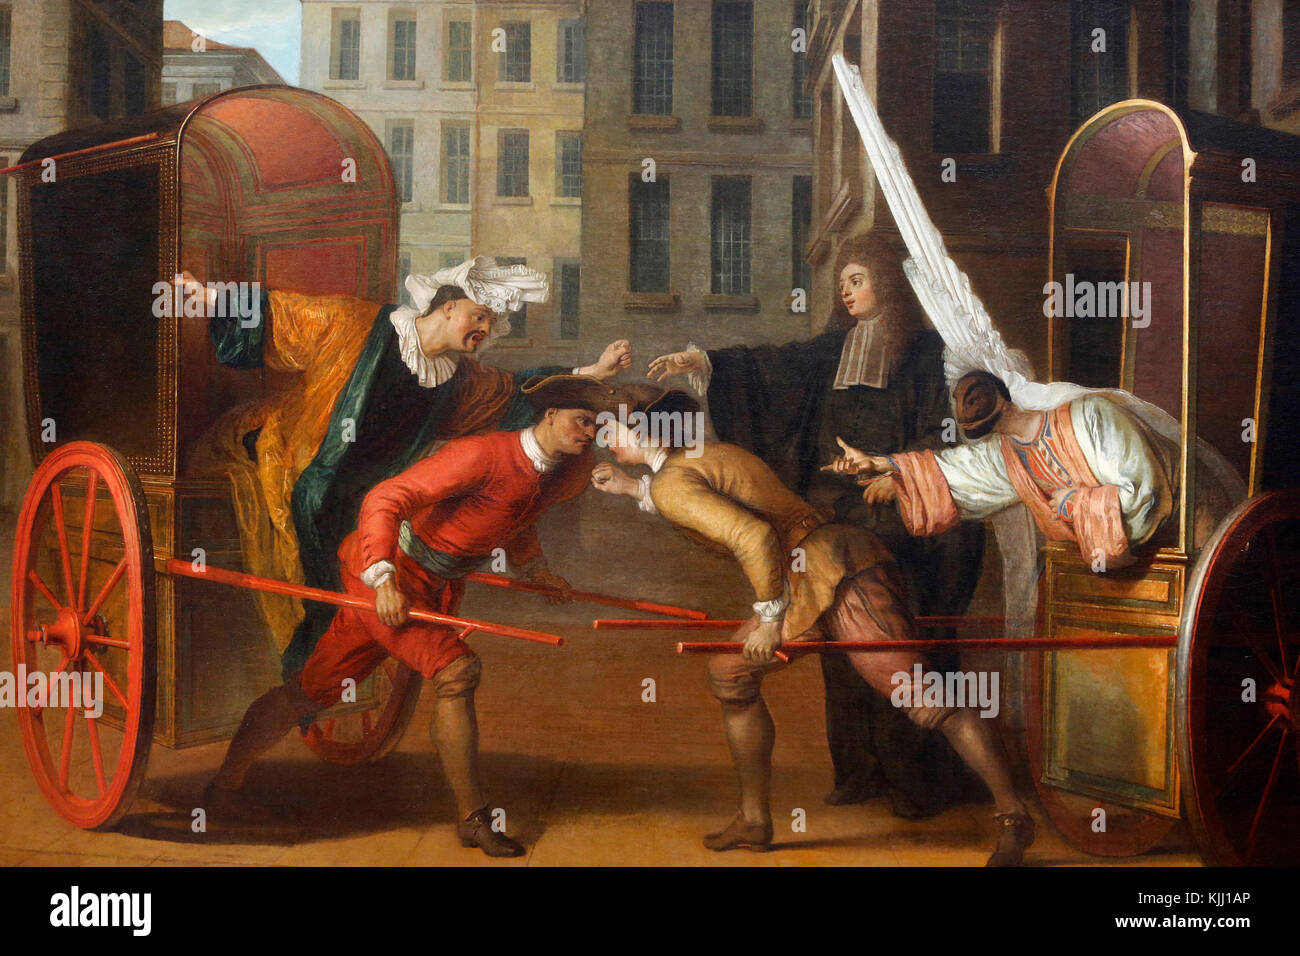 Louvre museum.  Cabmen's dispute. Claude Gillot. Oil on canvas, c. 1707.  France. - Stock Image